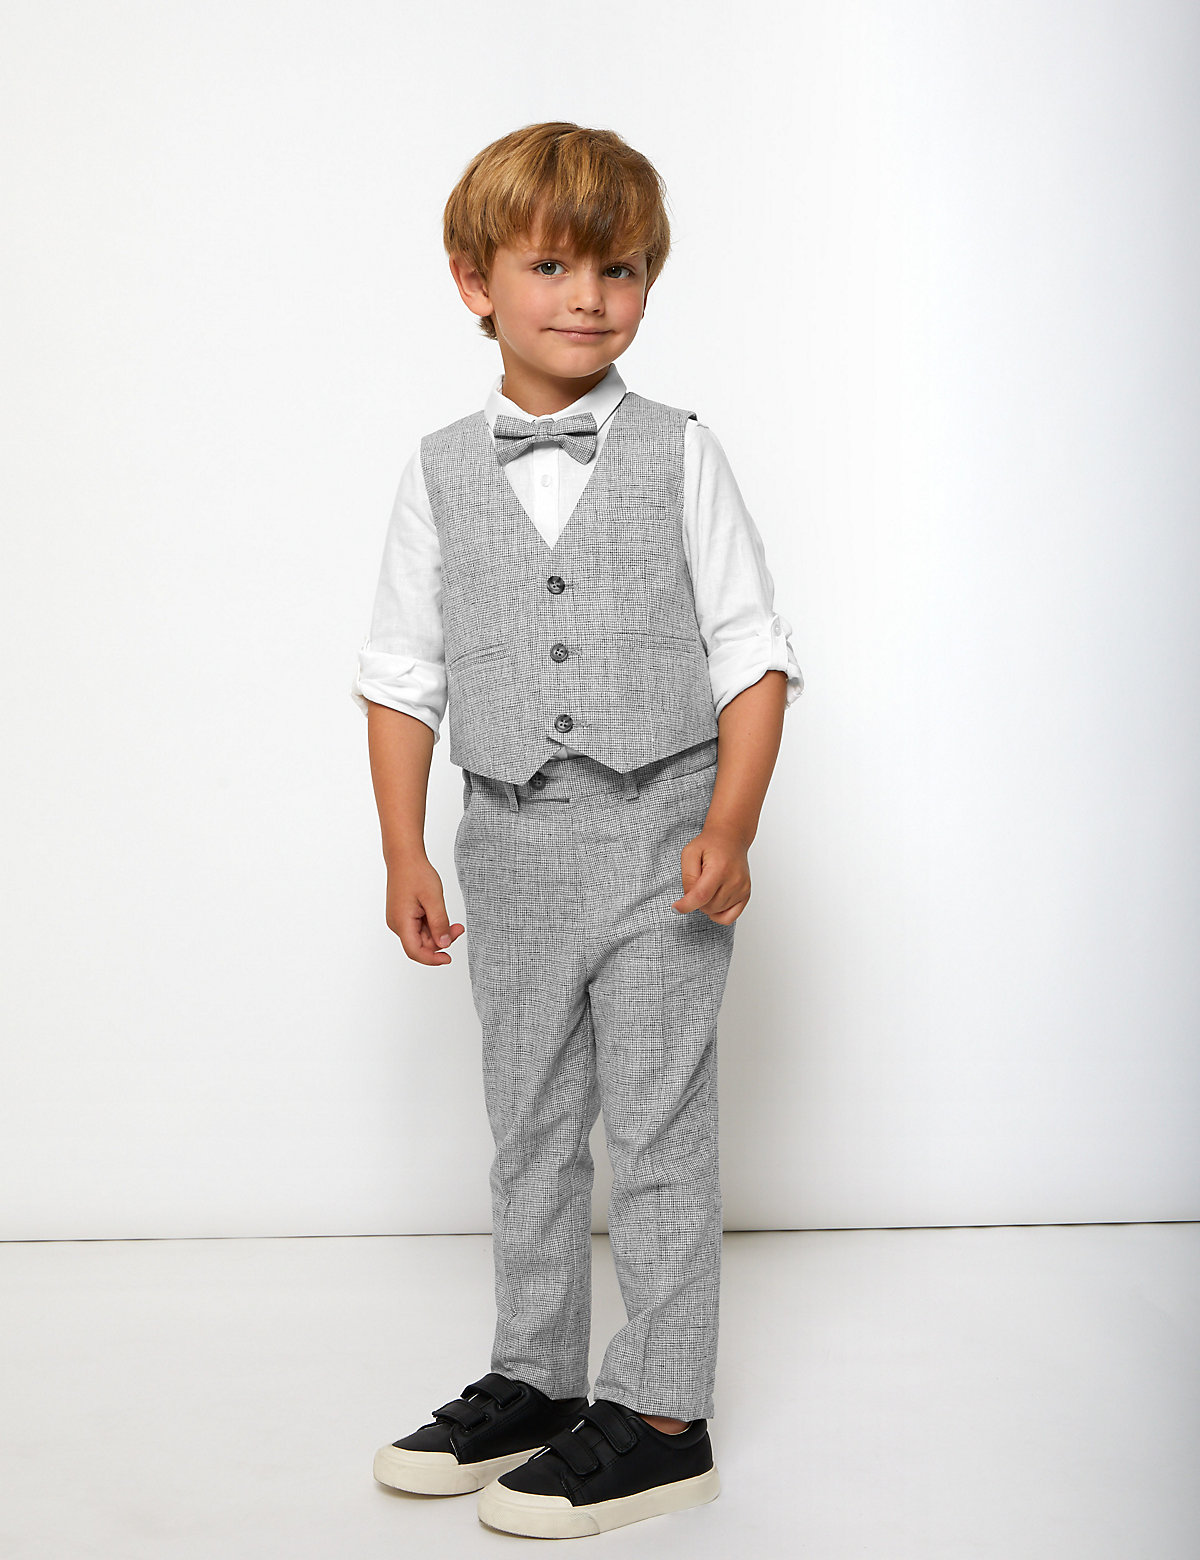 4 Piece Suit Outfit (2-7 Yrs)